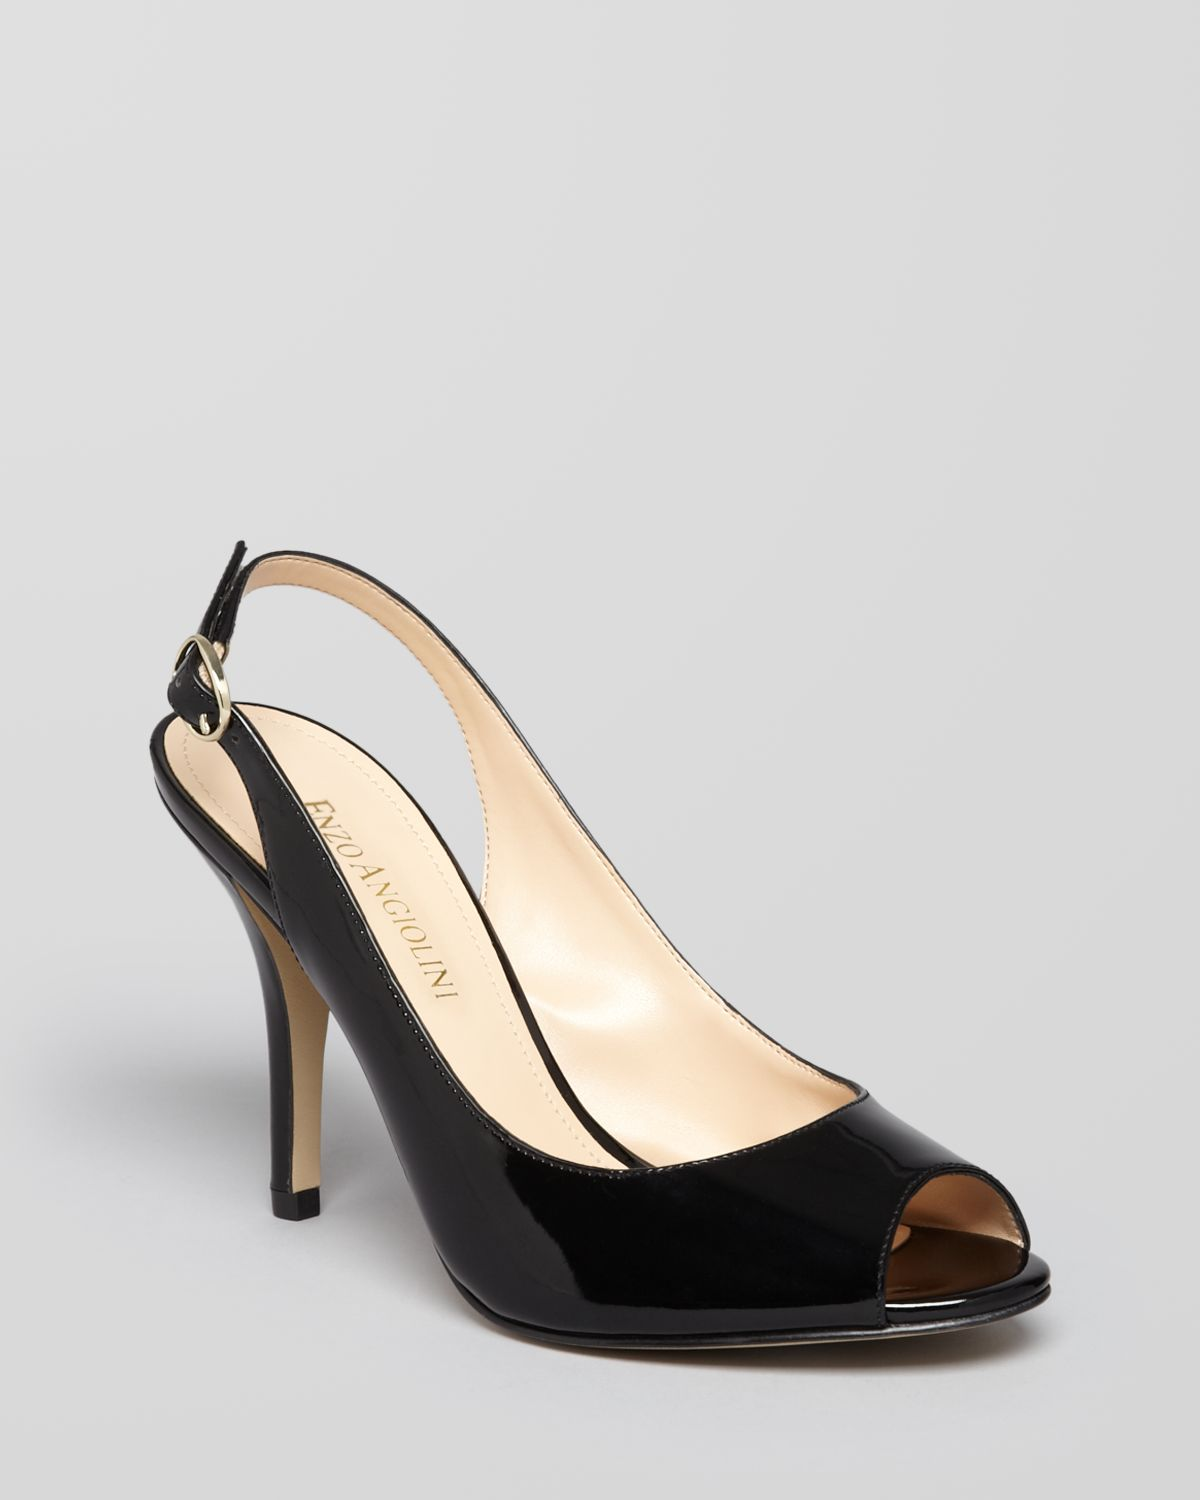 Lyst - Enzo Angiolini Pumps Mykell Peep Toe Slingback in Black 69e8bbe8d0